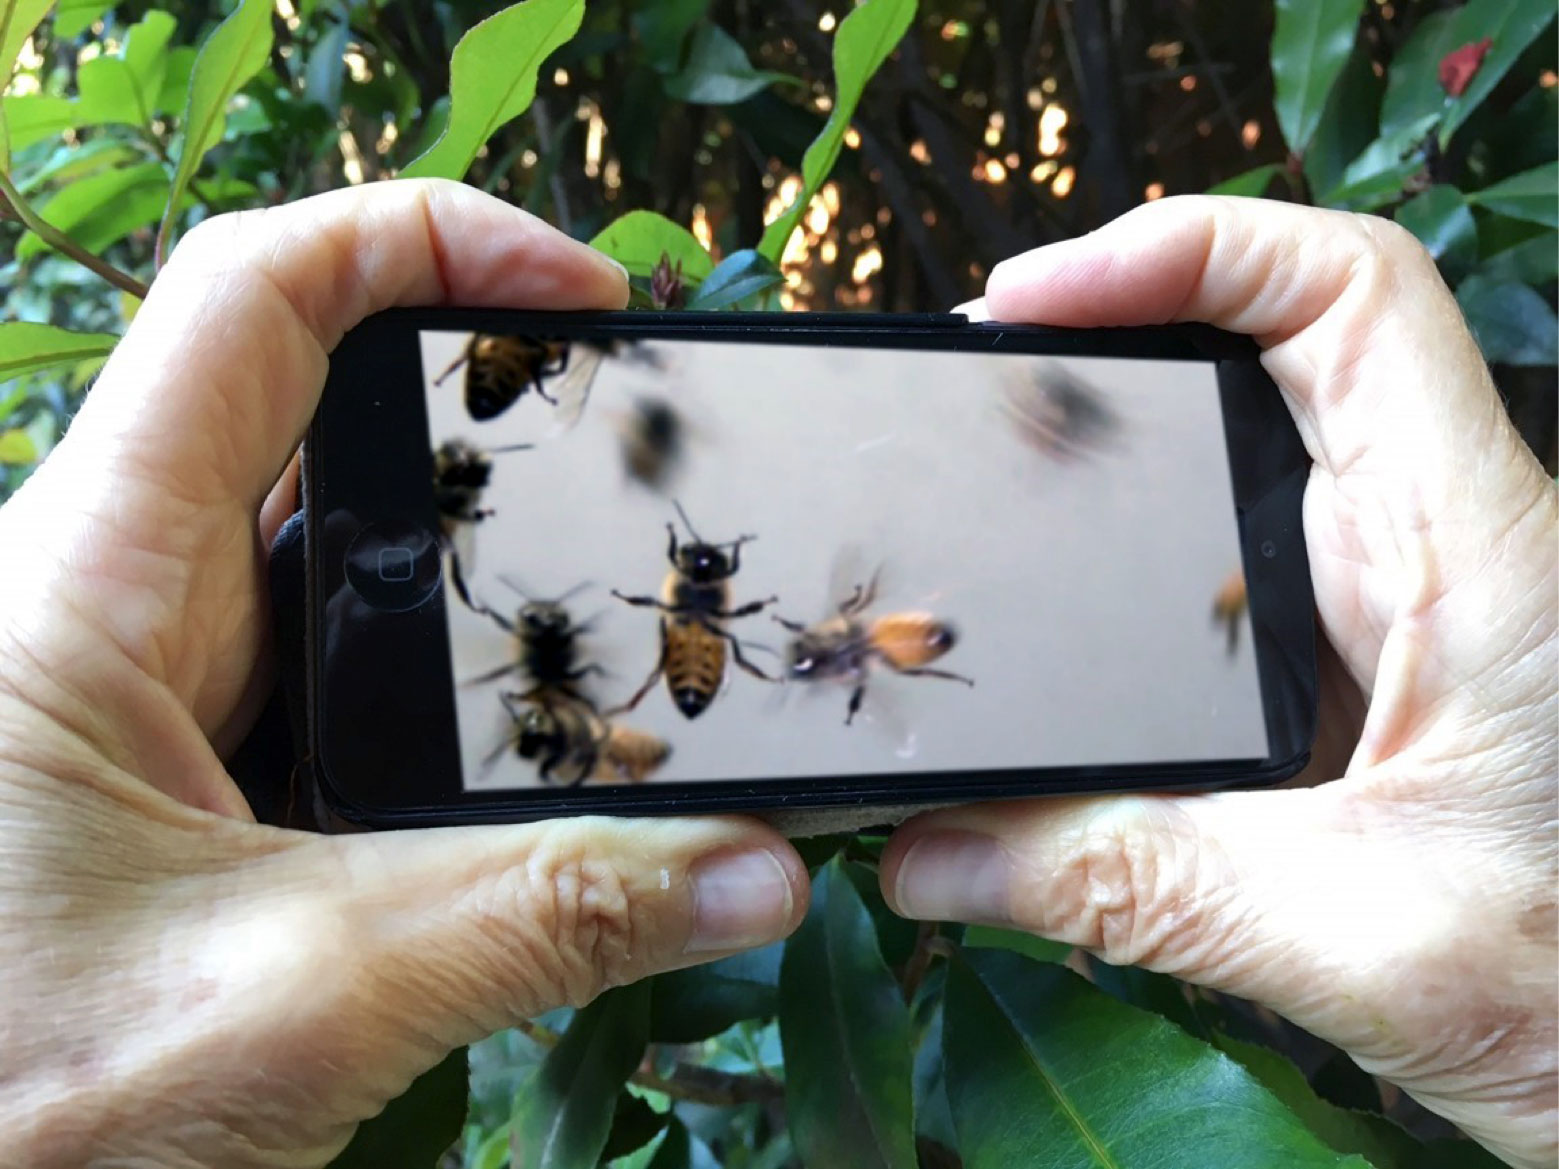 Artist's impression of the video playing on a smart phone. This shows clearly the way in which the relative size between the bees and the viewer's hands creates a unique, intimate viewing experience.